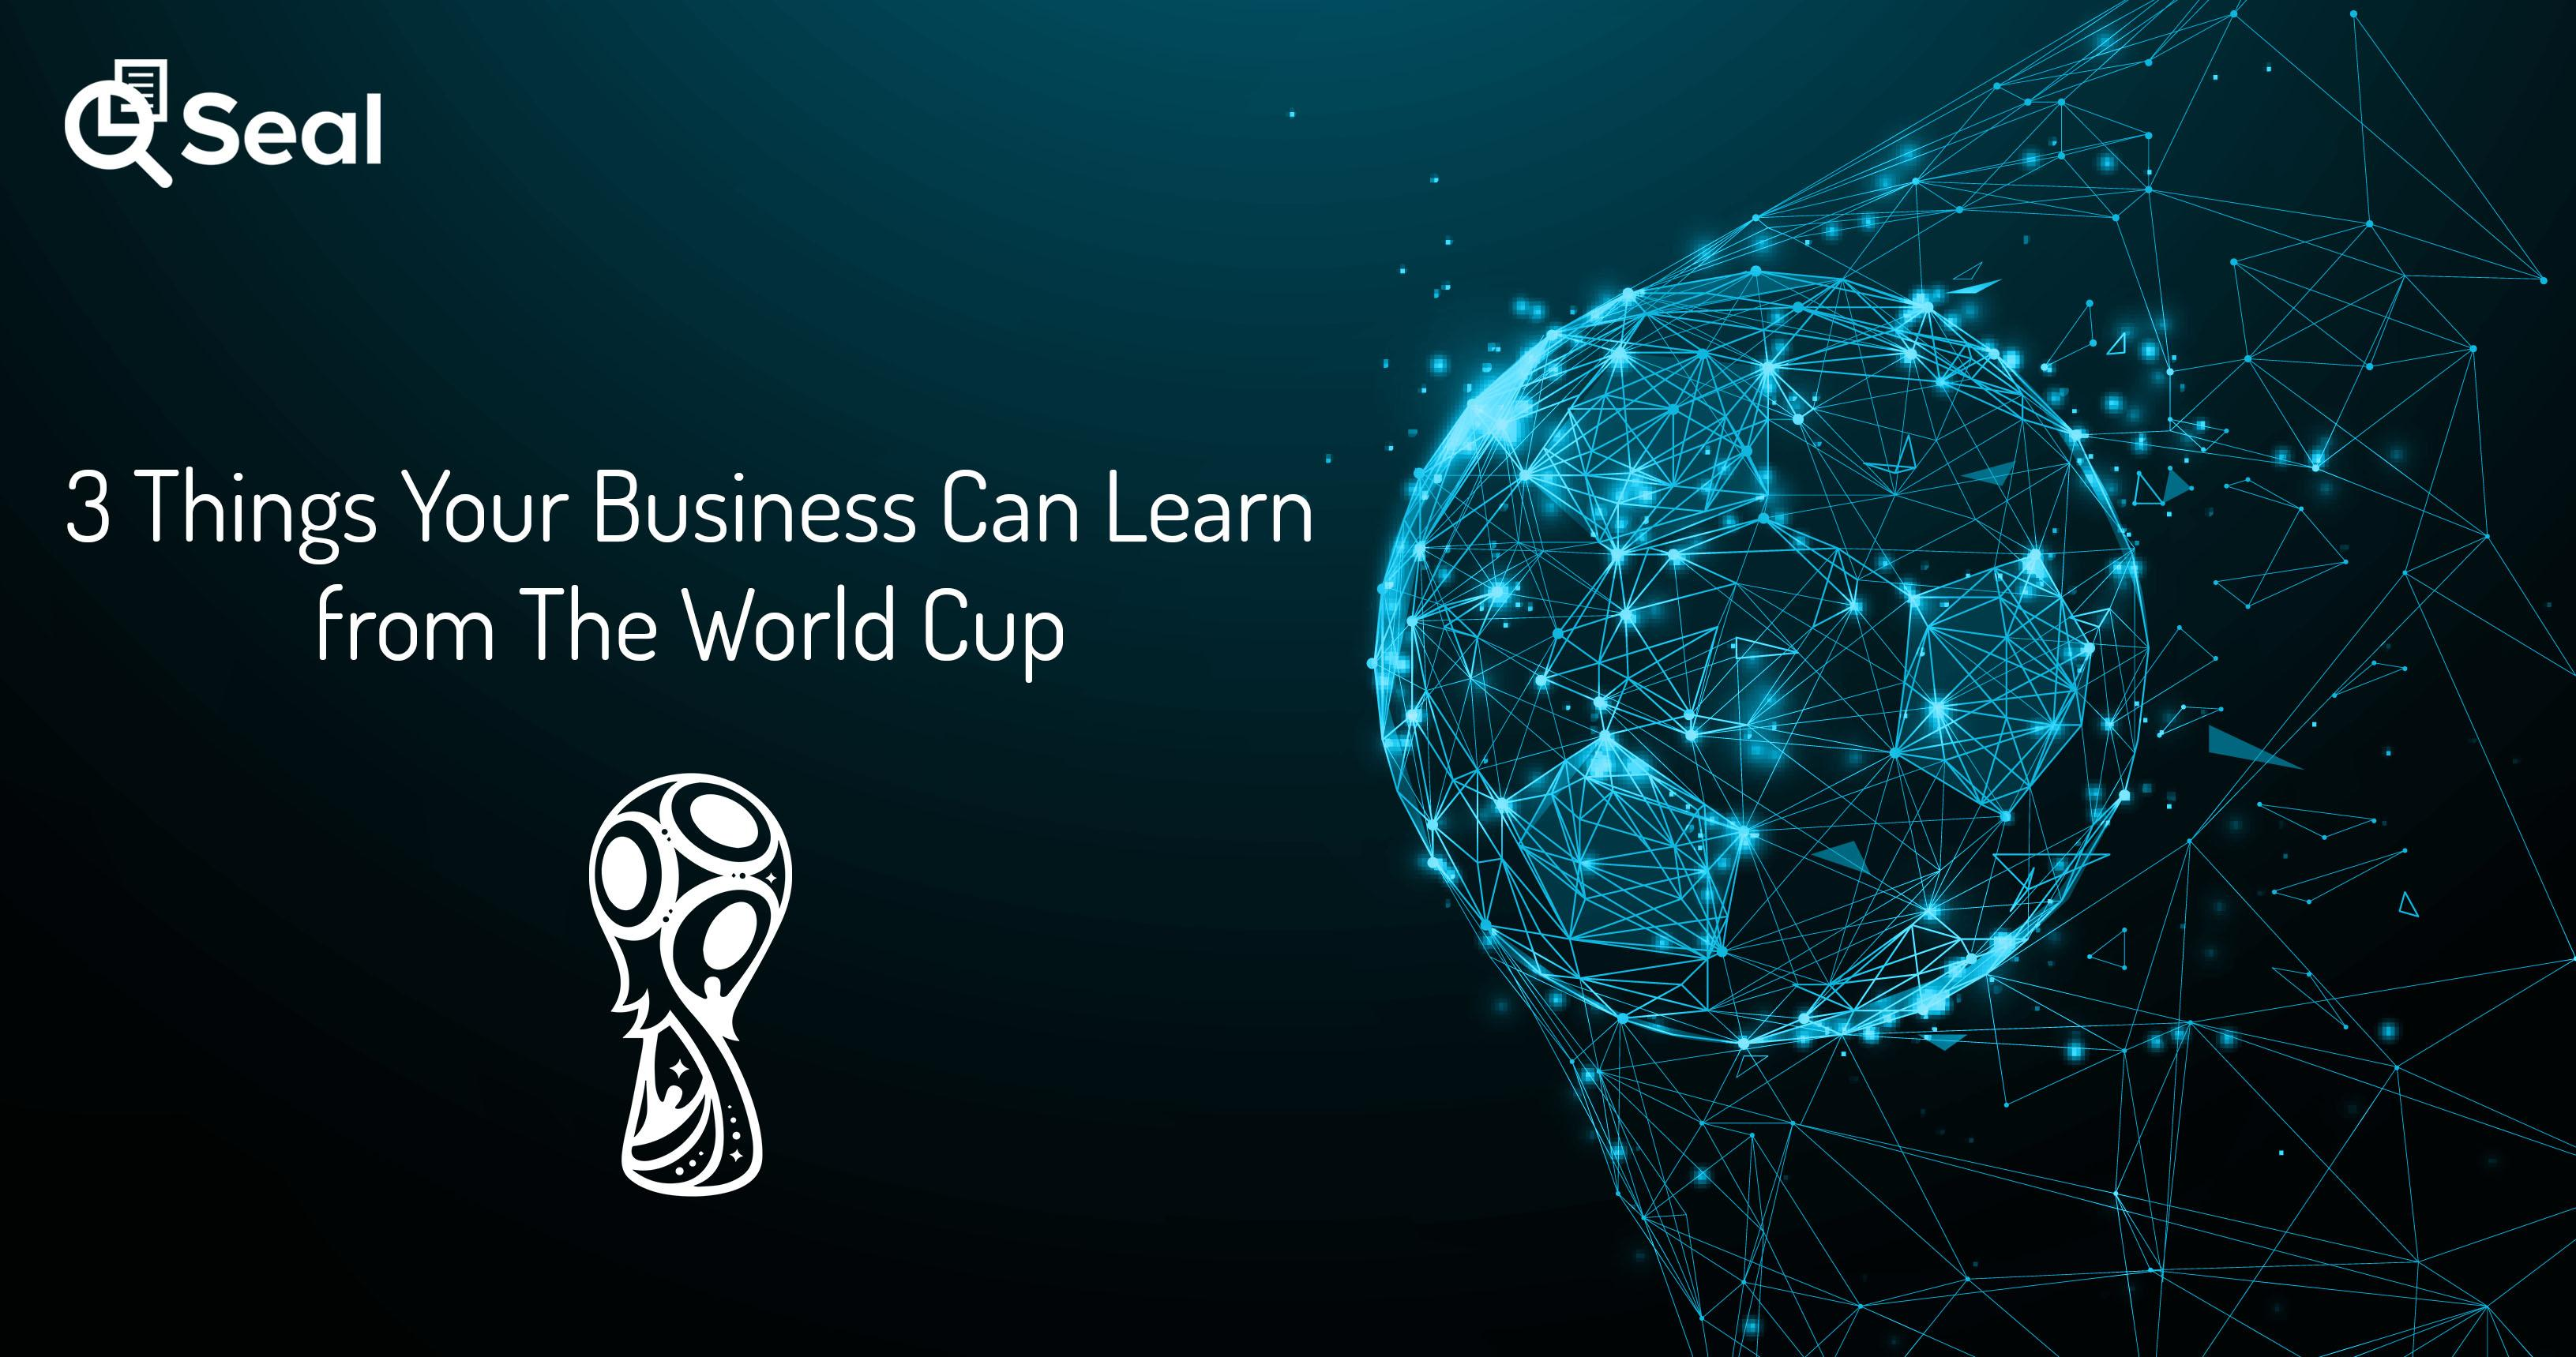 3 Things Your Business Can Learn from The World Cup